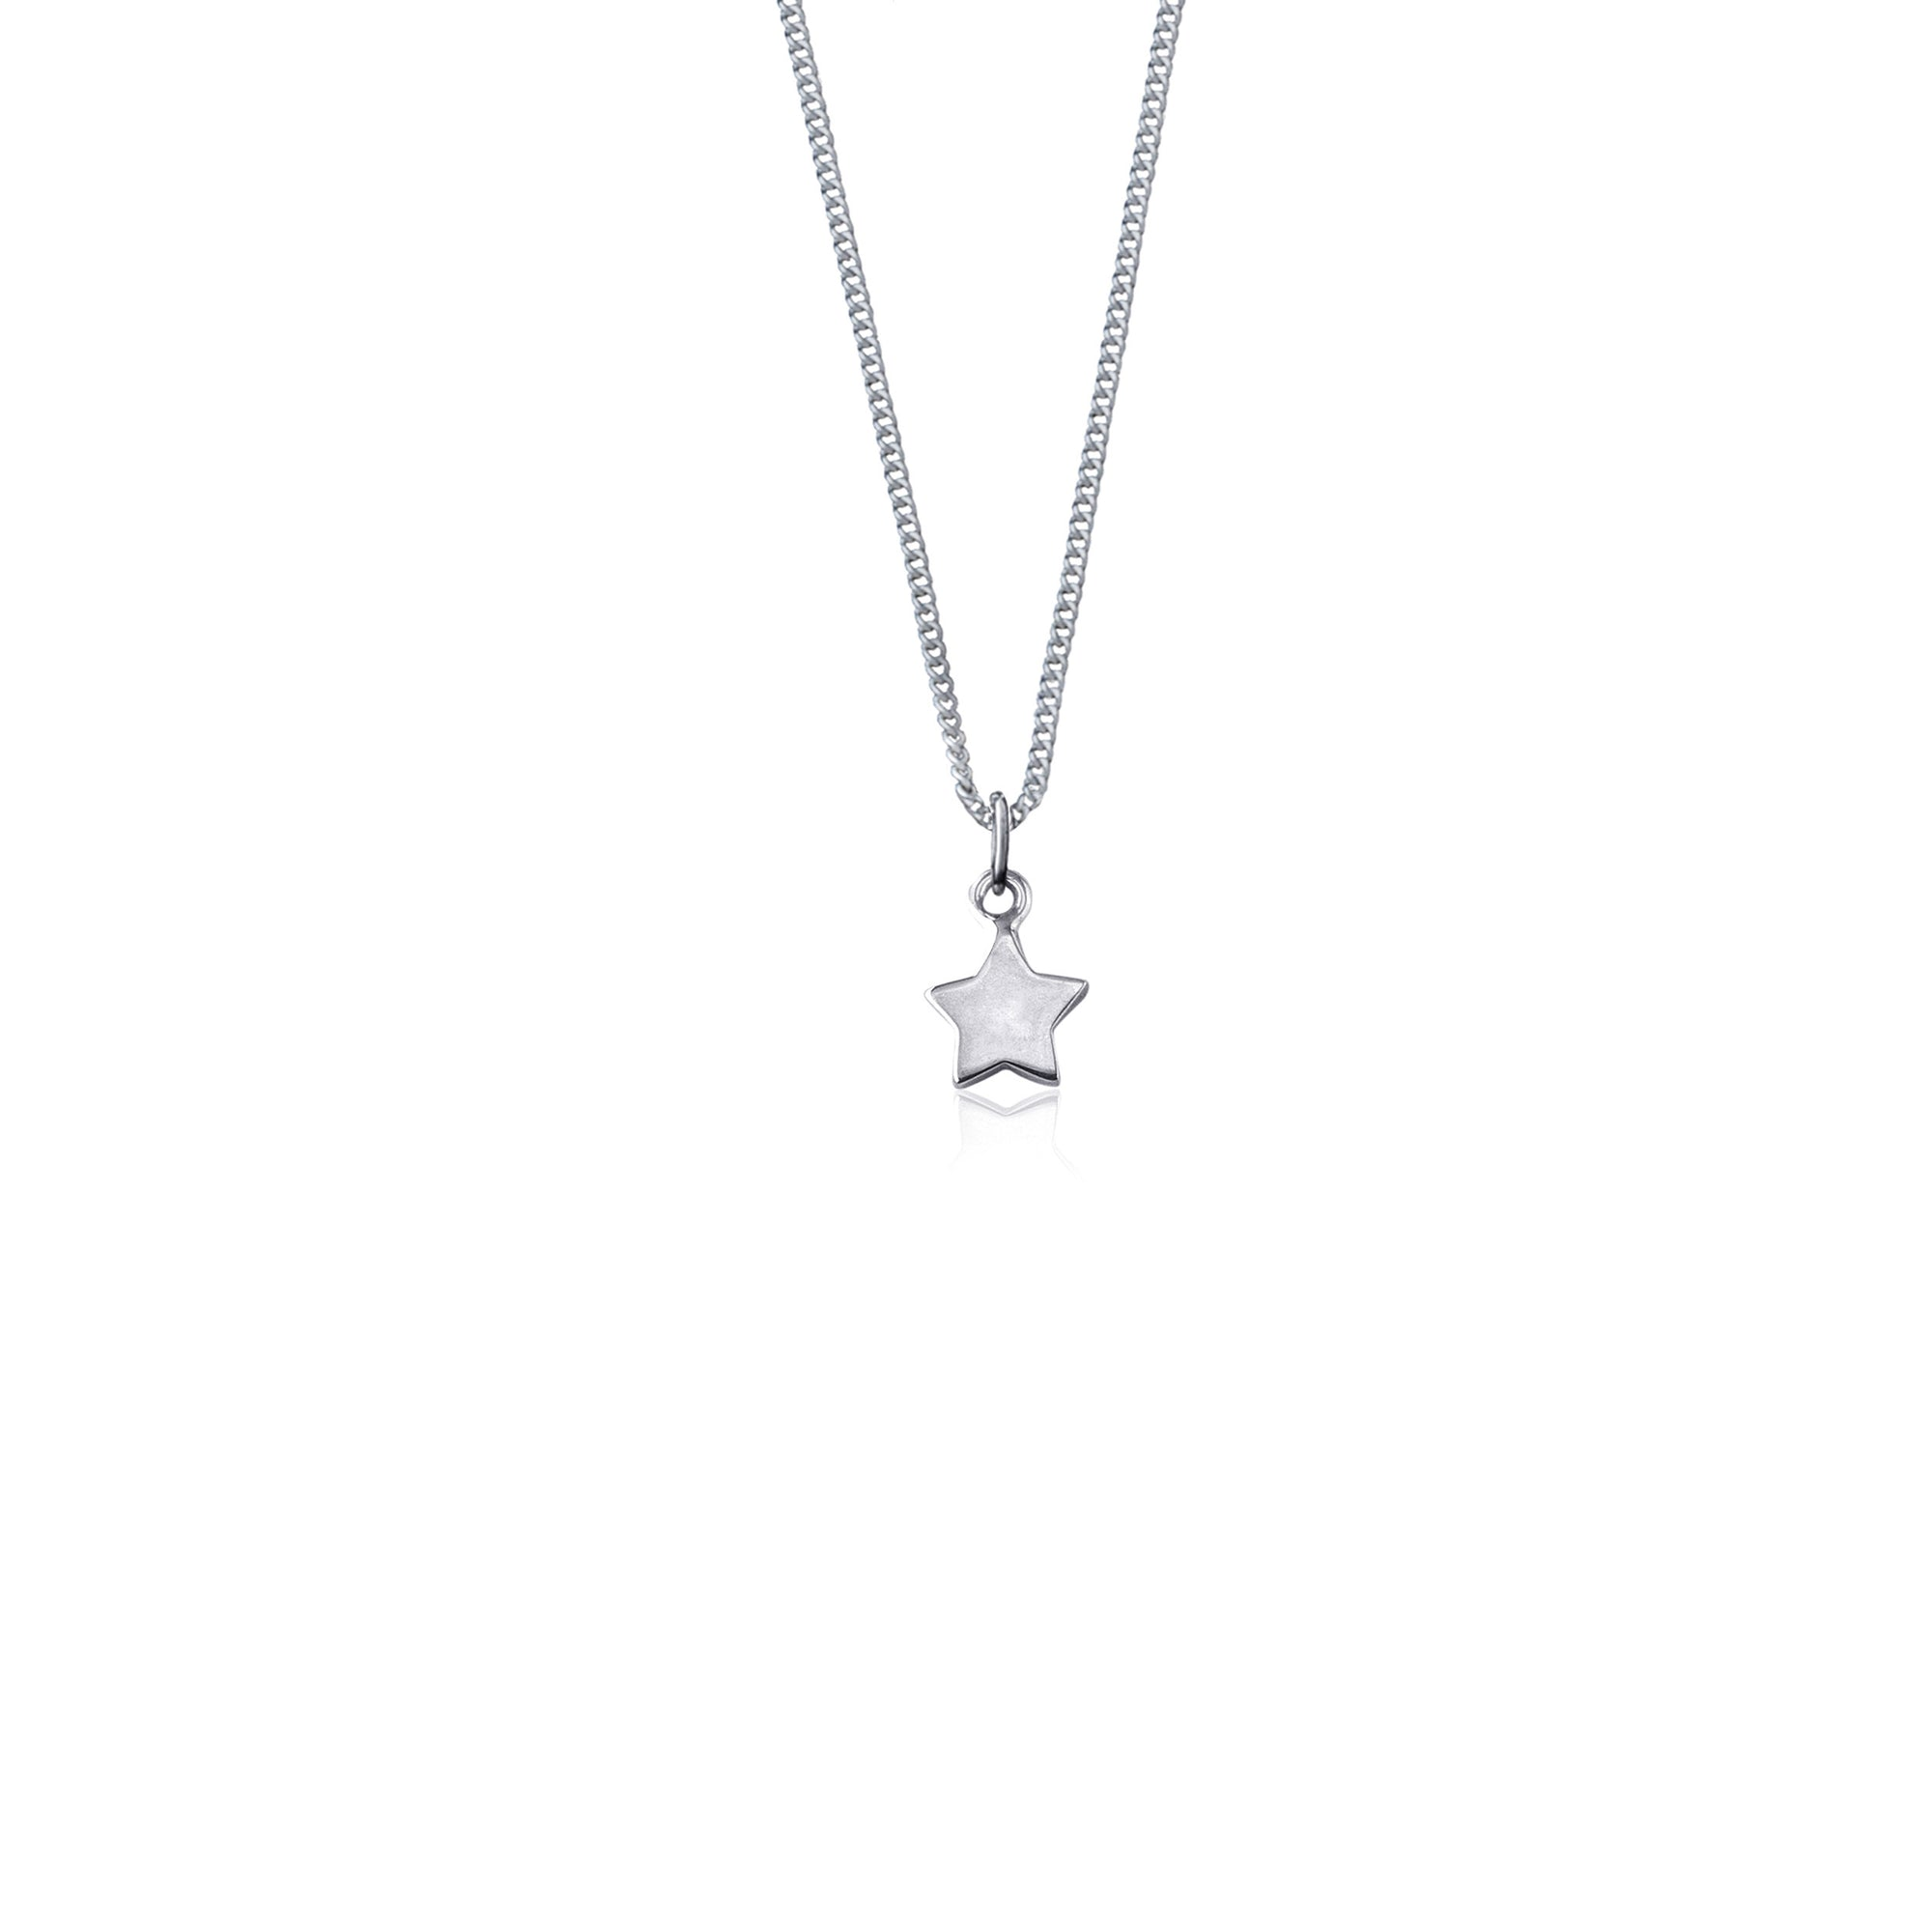 La Luna Rose 'Wish Upon a Star' Necklace - Silver